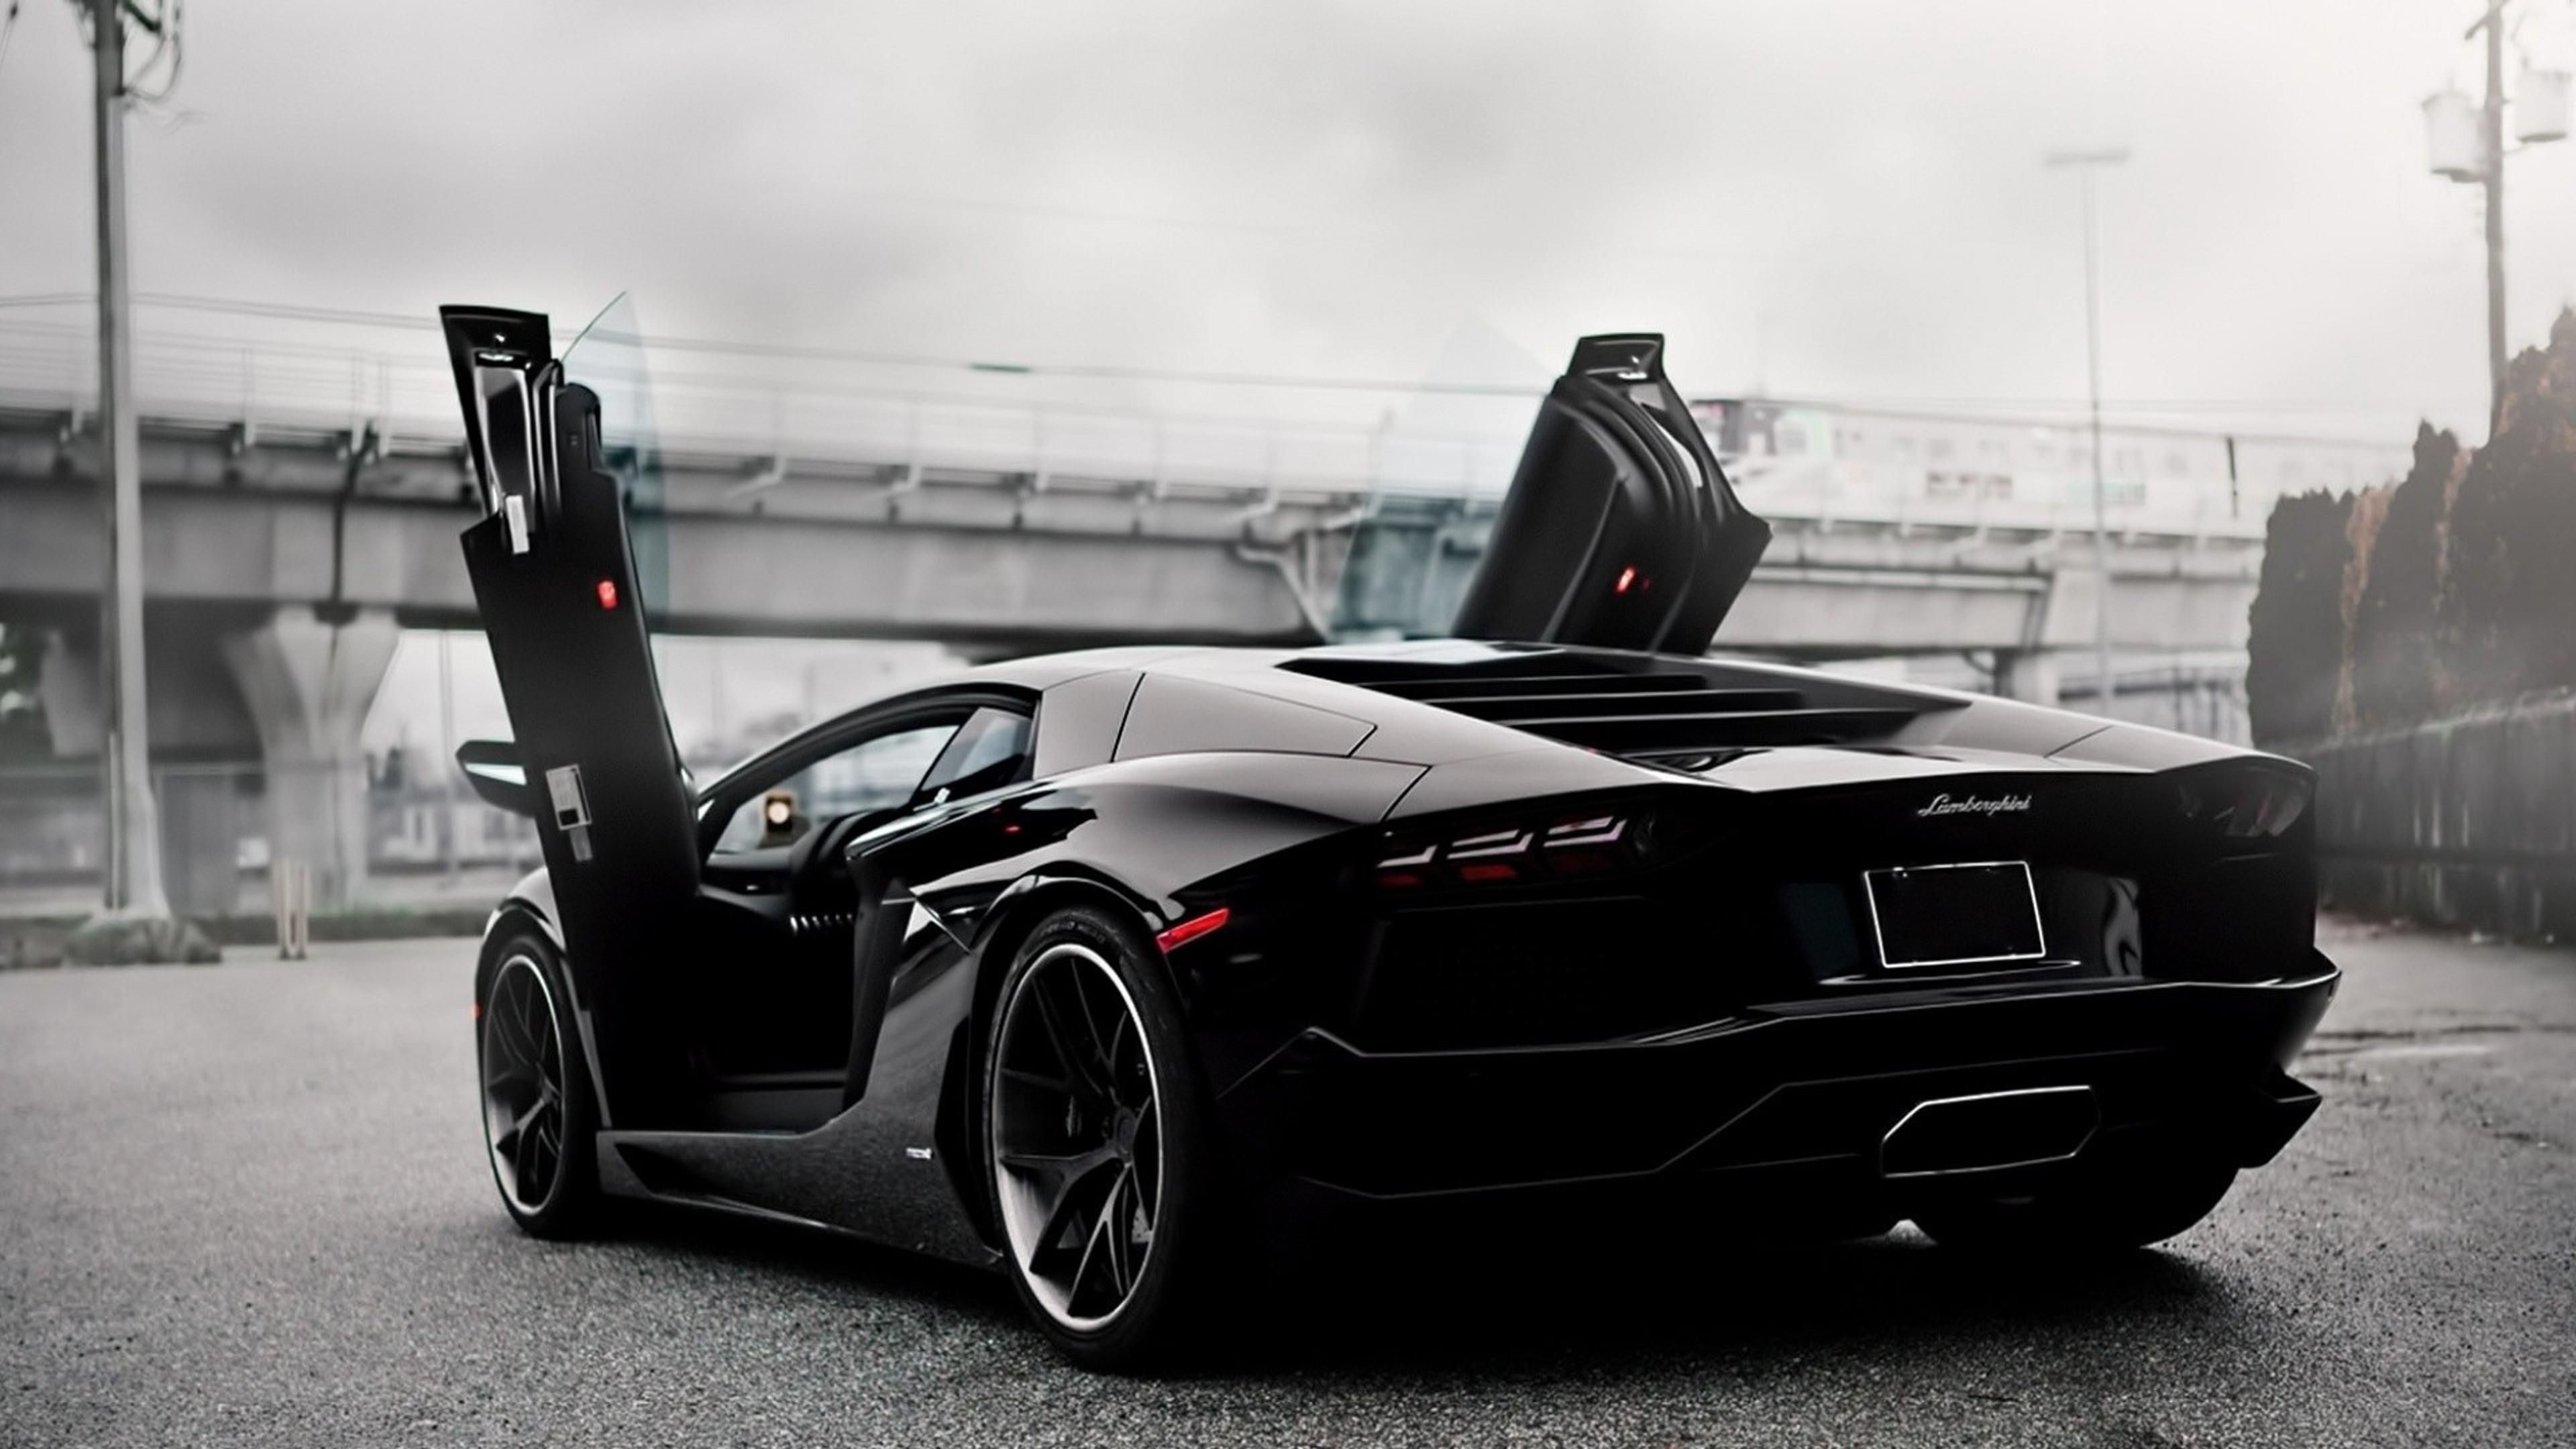 Black Lamborghini Aventador Doors Up 4k wallpaper